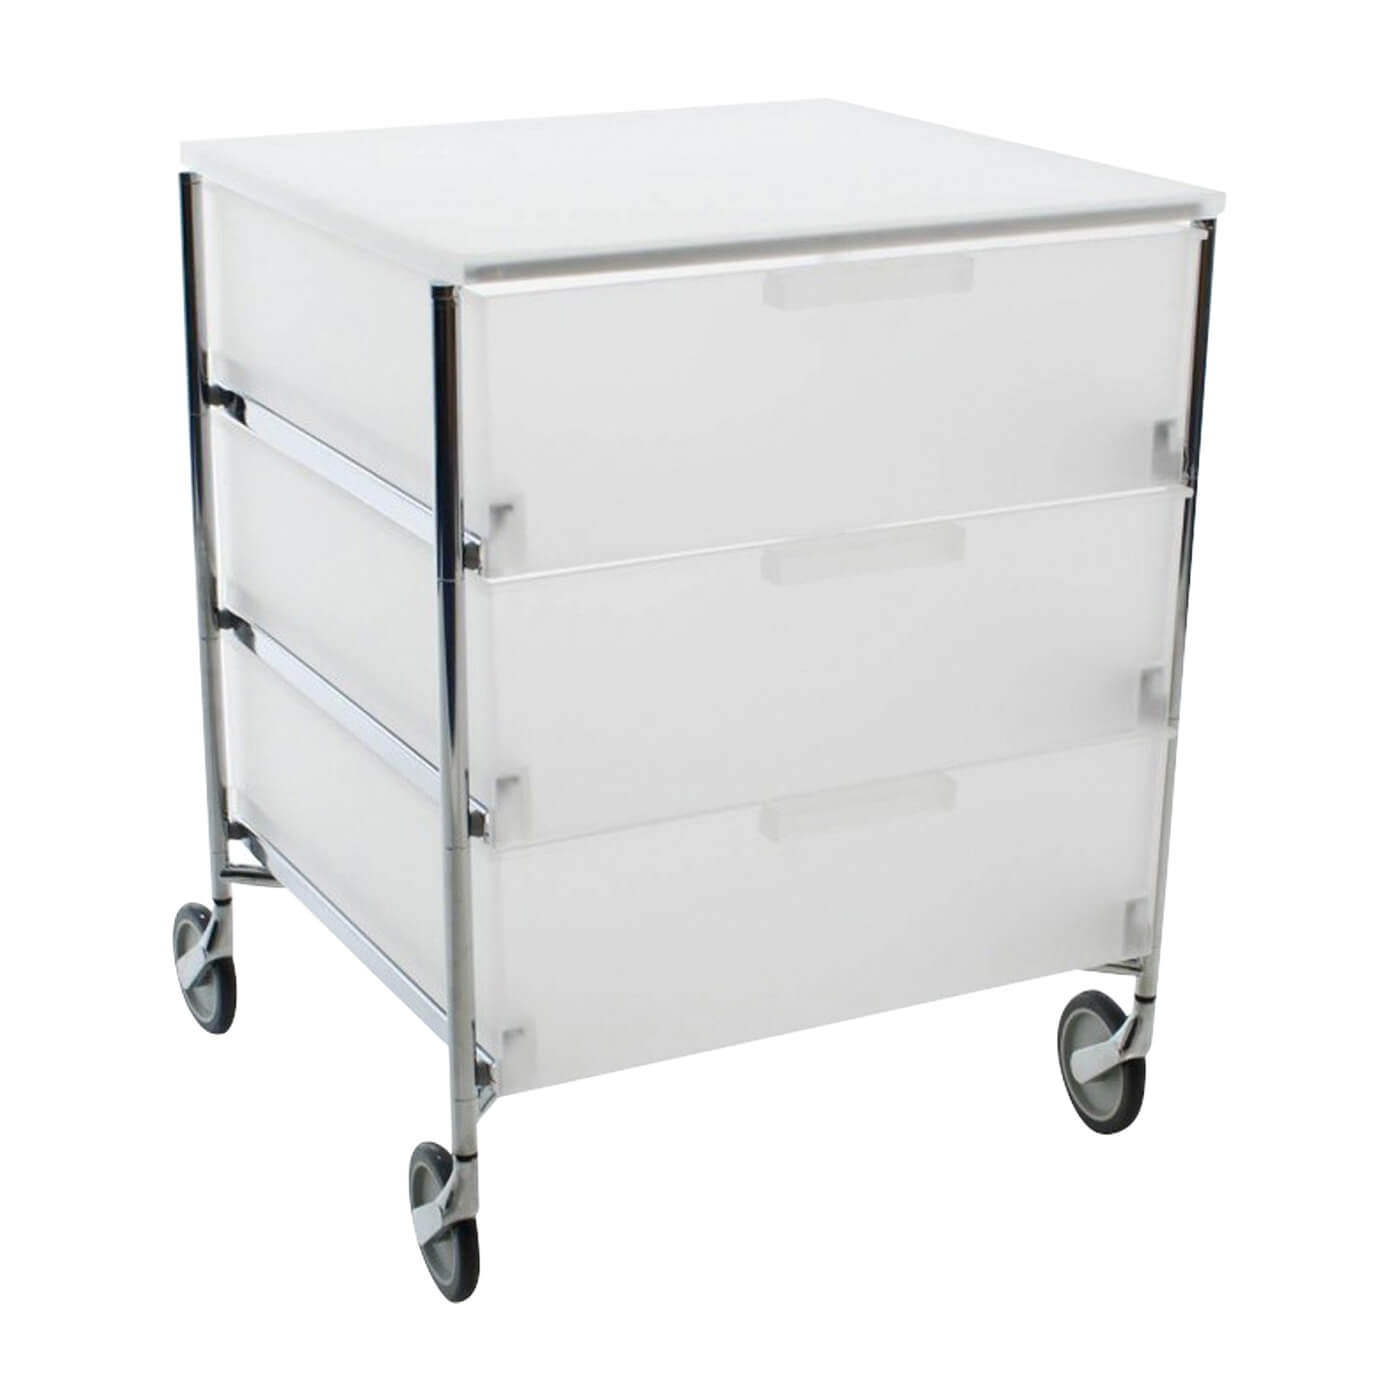 Kartell Mobil drawers iced semi transparent